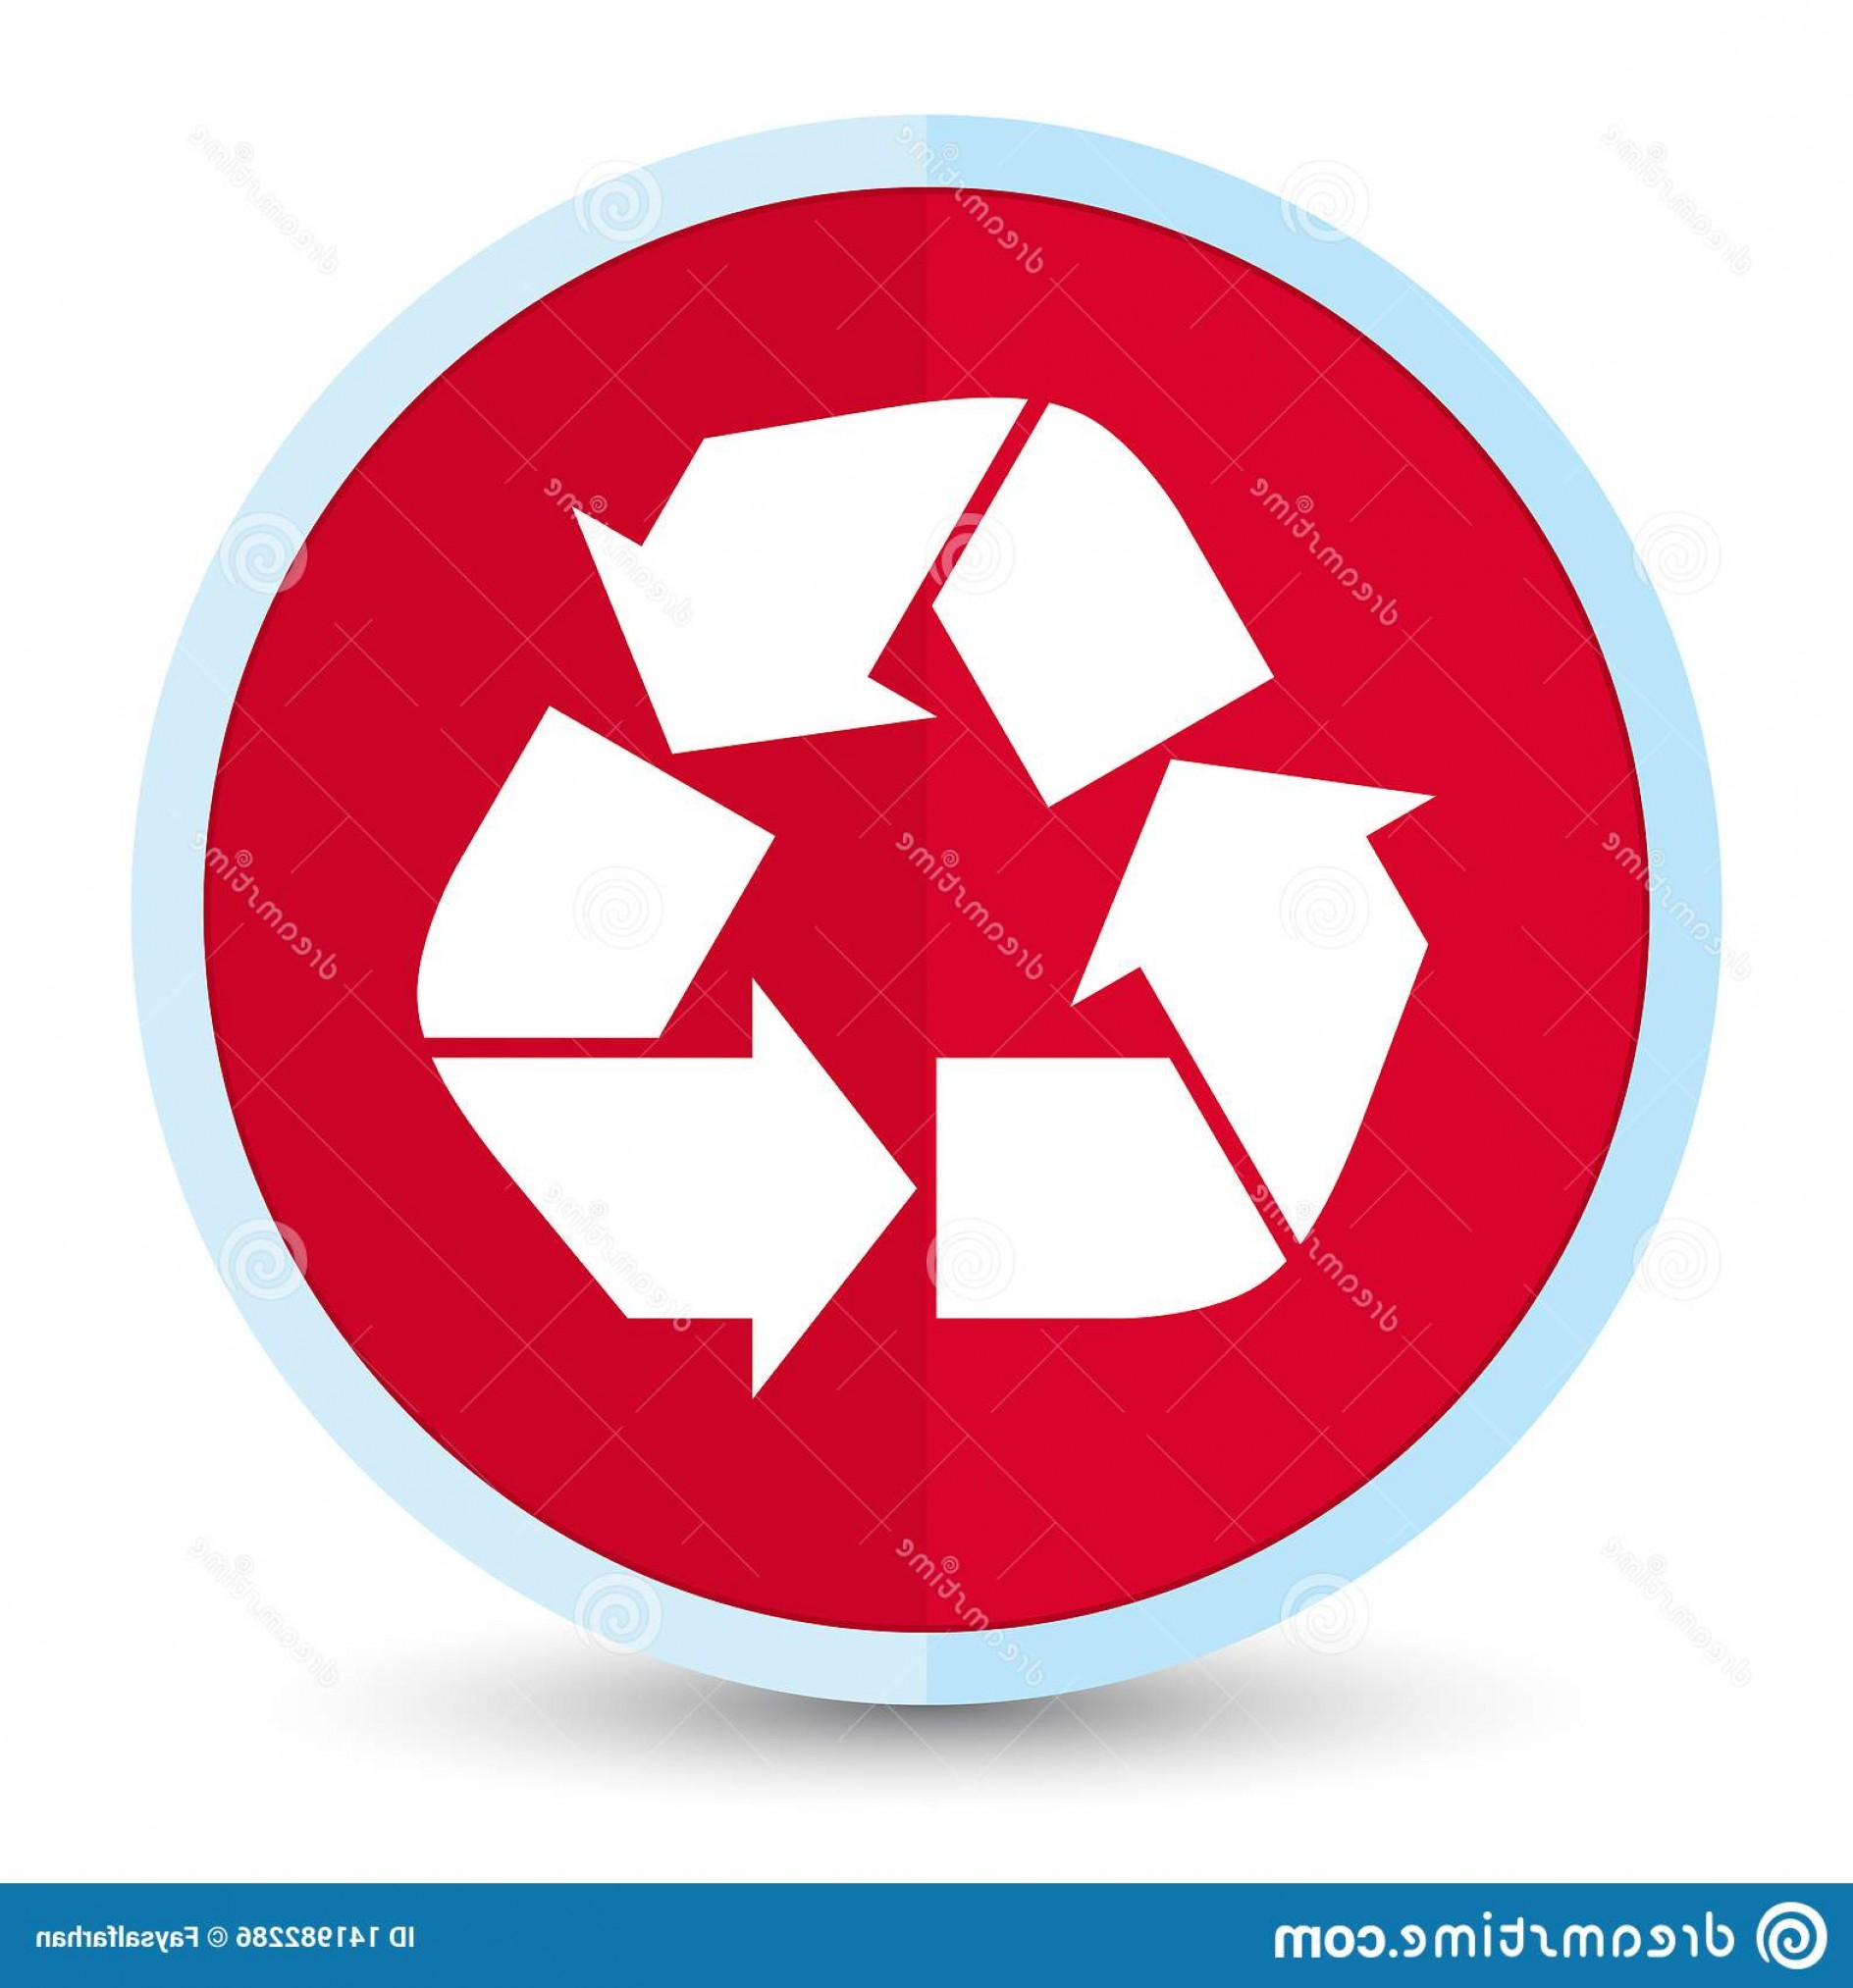 Recycle Icon Vector Red: Recycle Icon Flat Prime Red Round Button Isolated Abstract Illustration Image